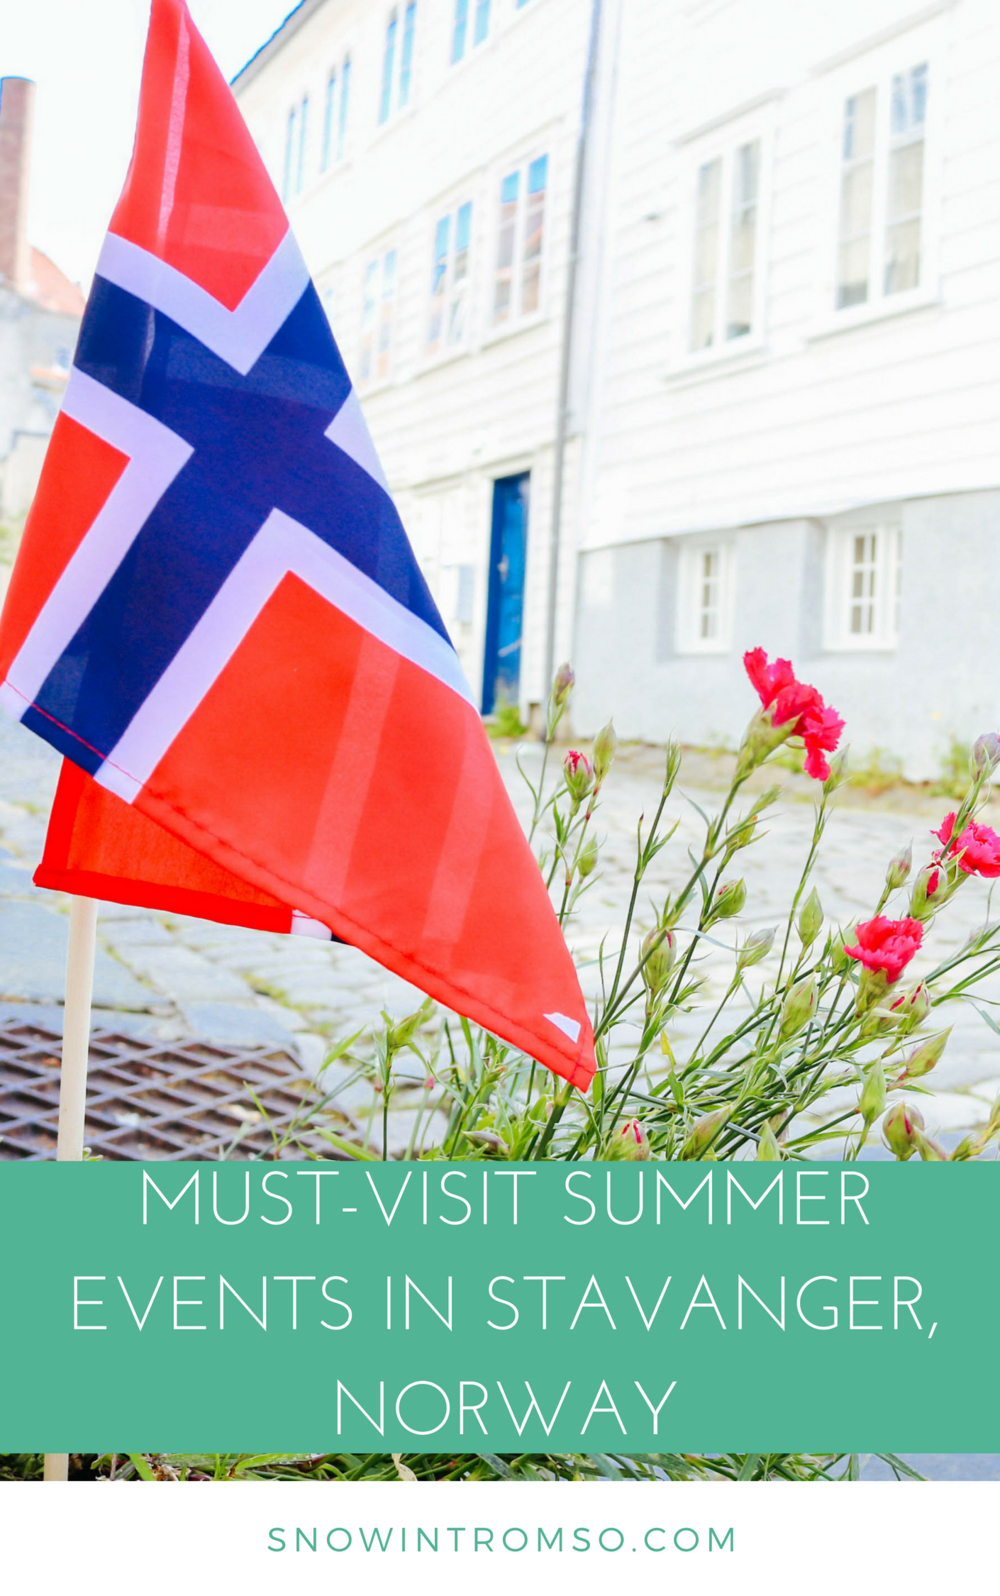 Considering a visit to Stavanger? Read the article to find out why late July is the perfect time to do so!